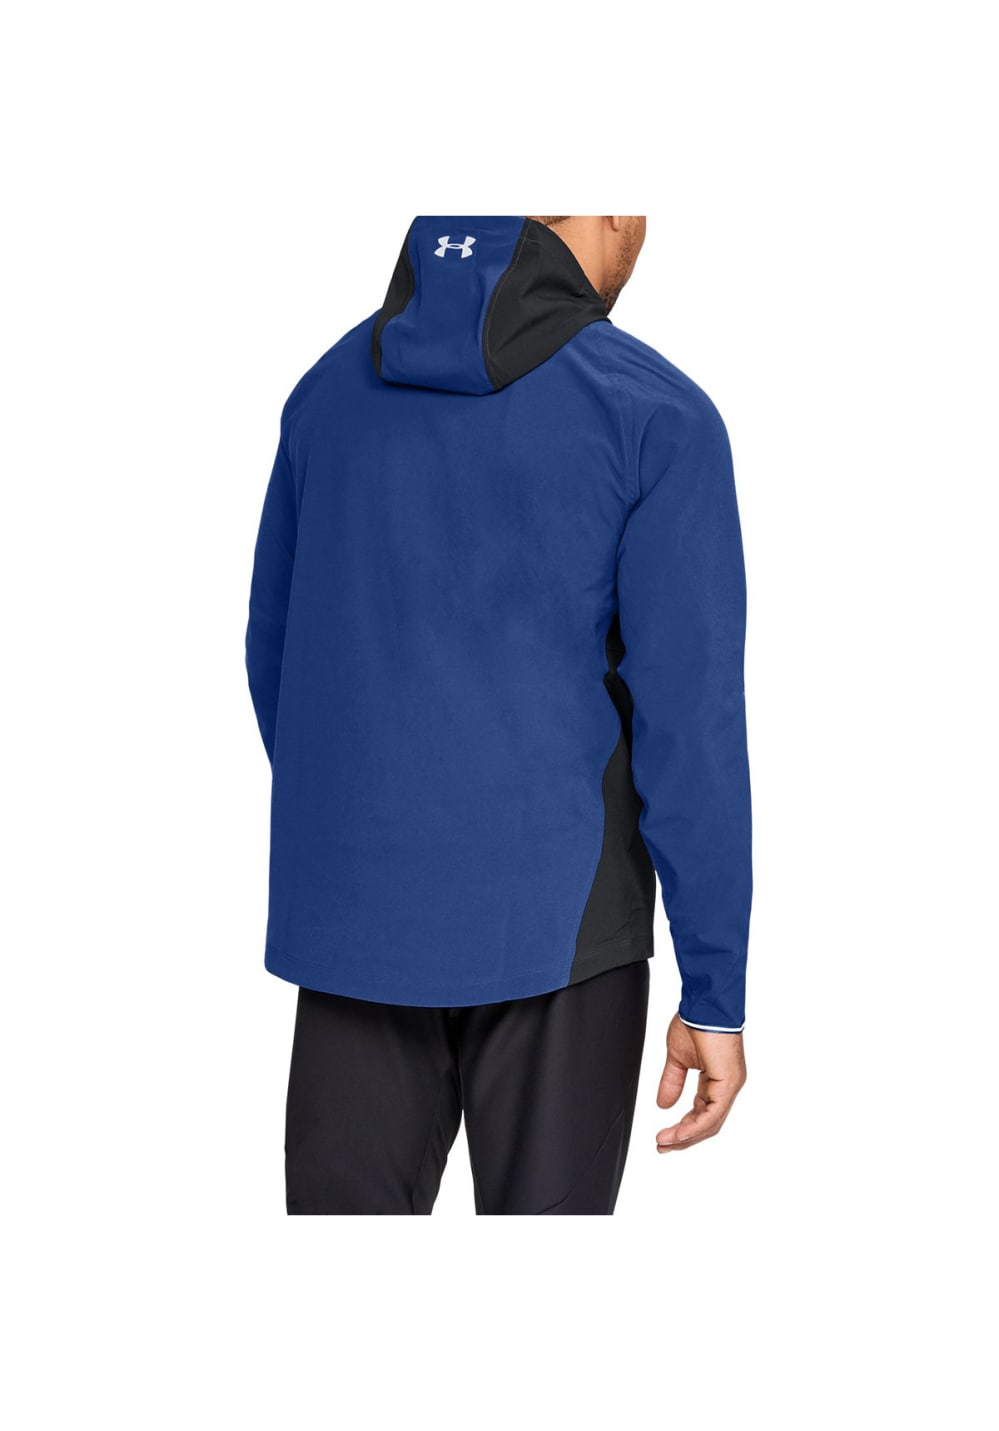 Clothing & Accessories Under Armour Outrun The Storm Mens Running Jacket Blue